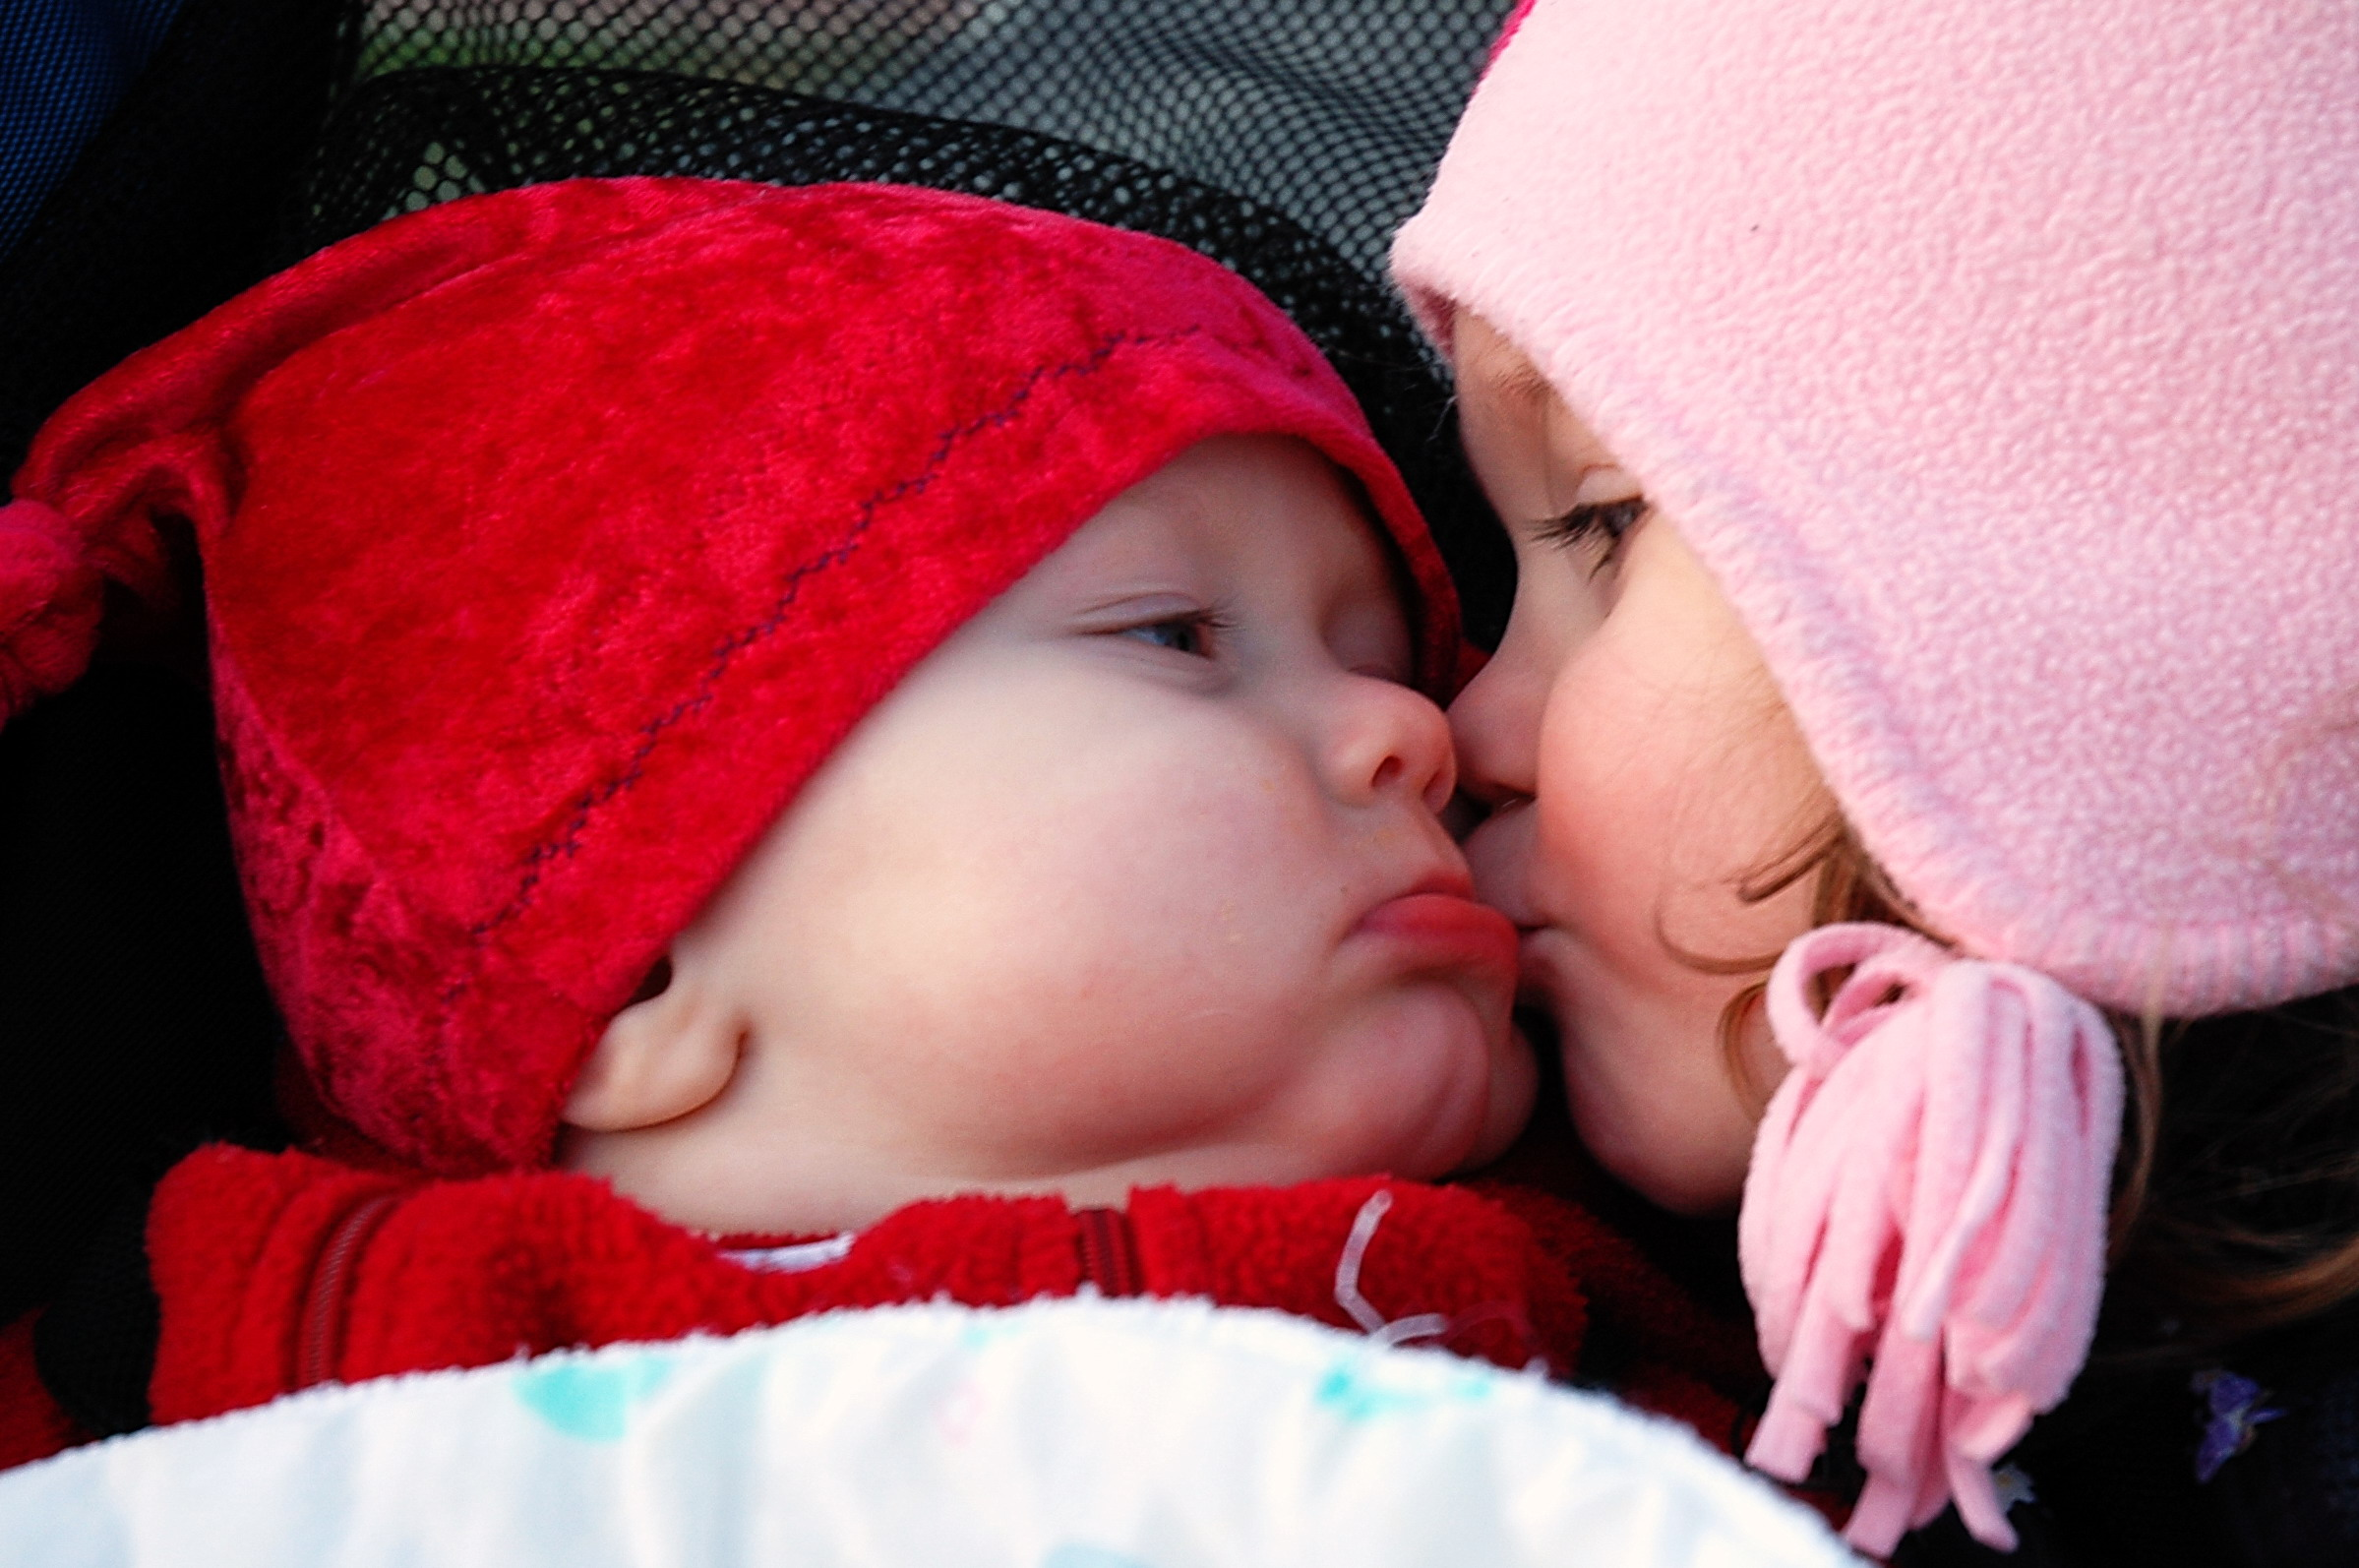 Description smooches baby and child kiss